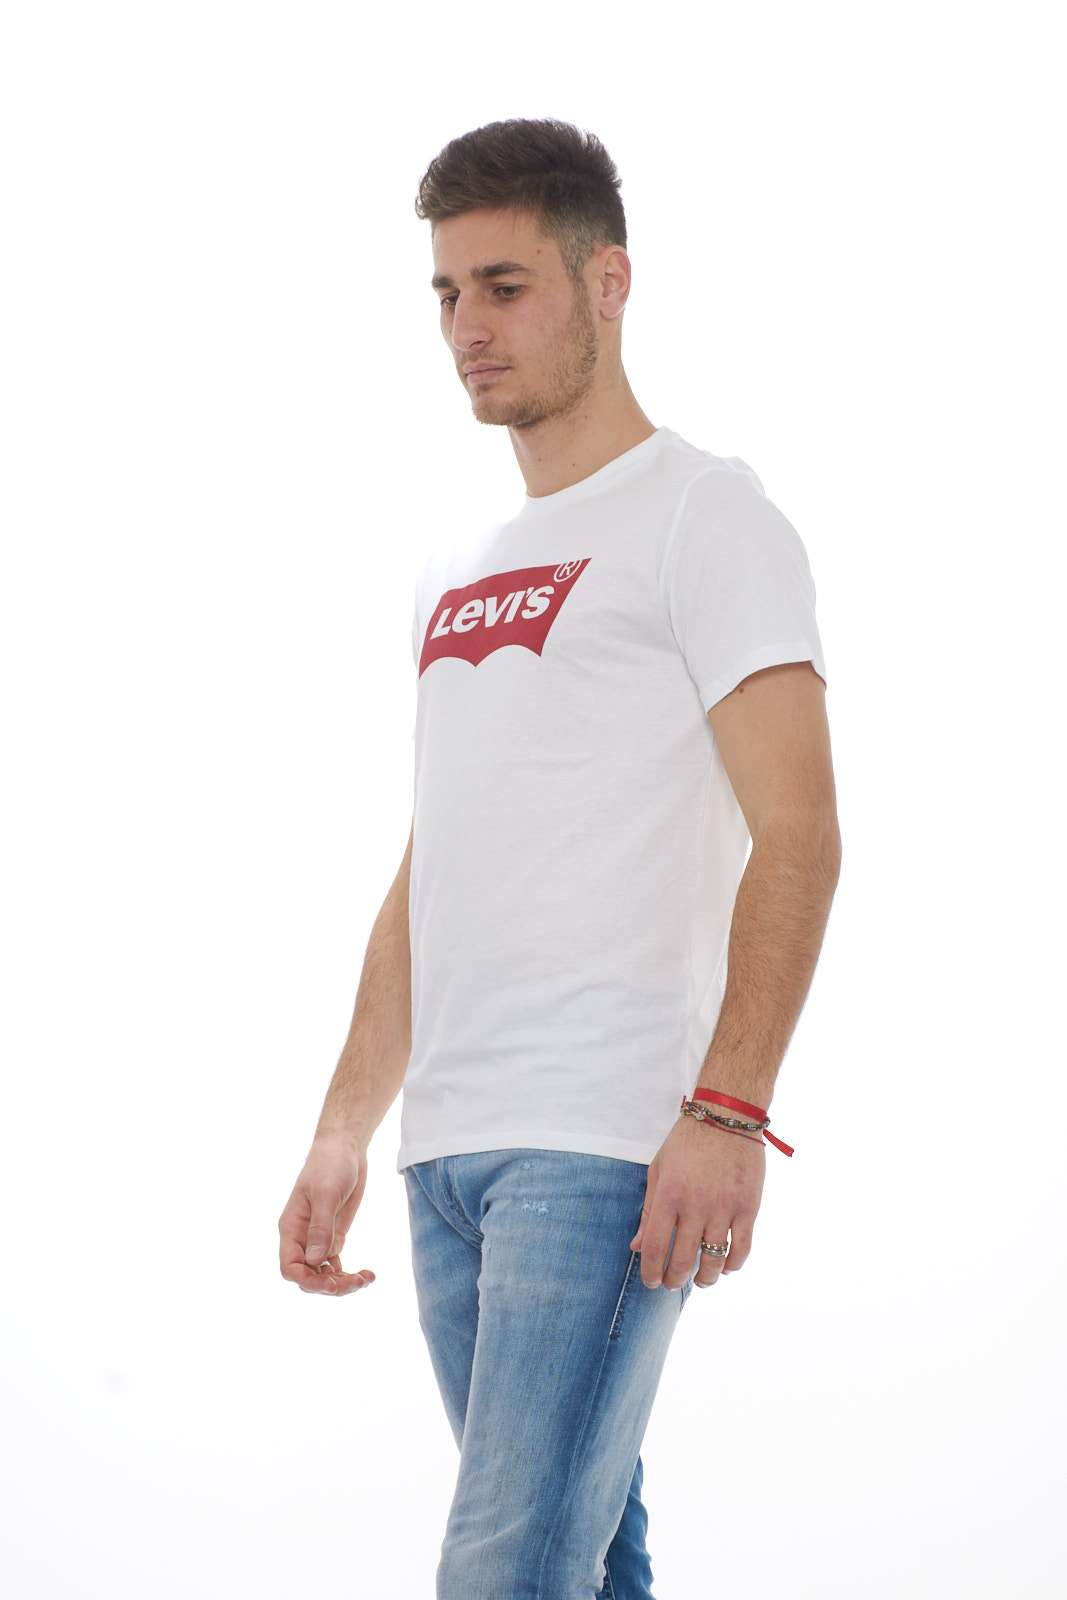 https://www.parmax.com/media/catalog/product/a/i/PE-outlet_parmax-t-shirt-uomo-Levis-17783-B_1.jpg